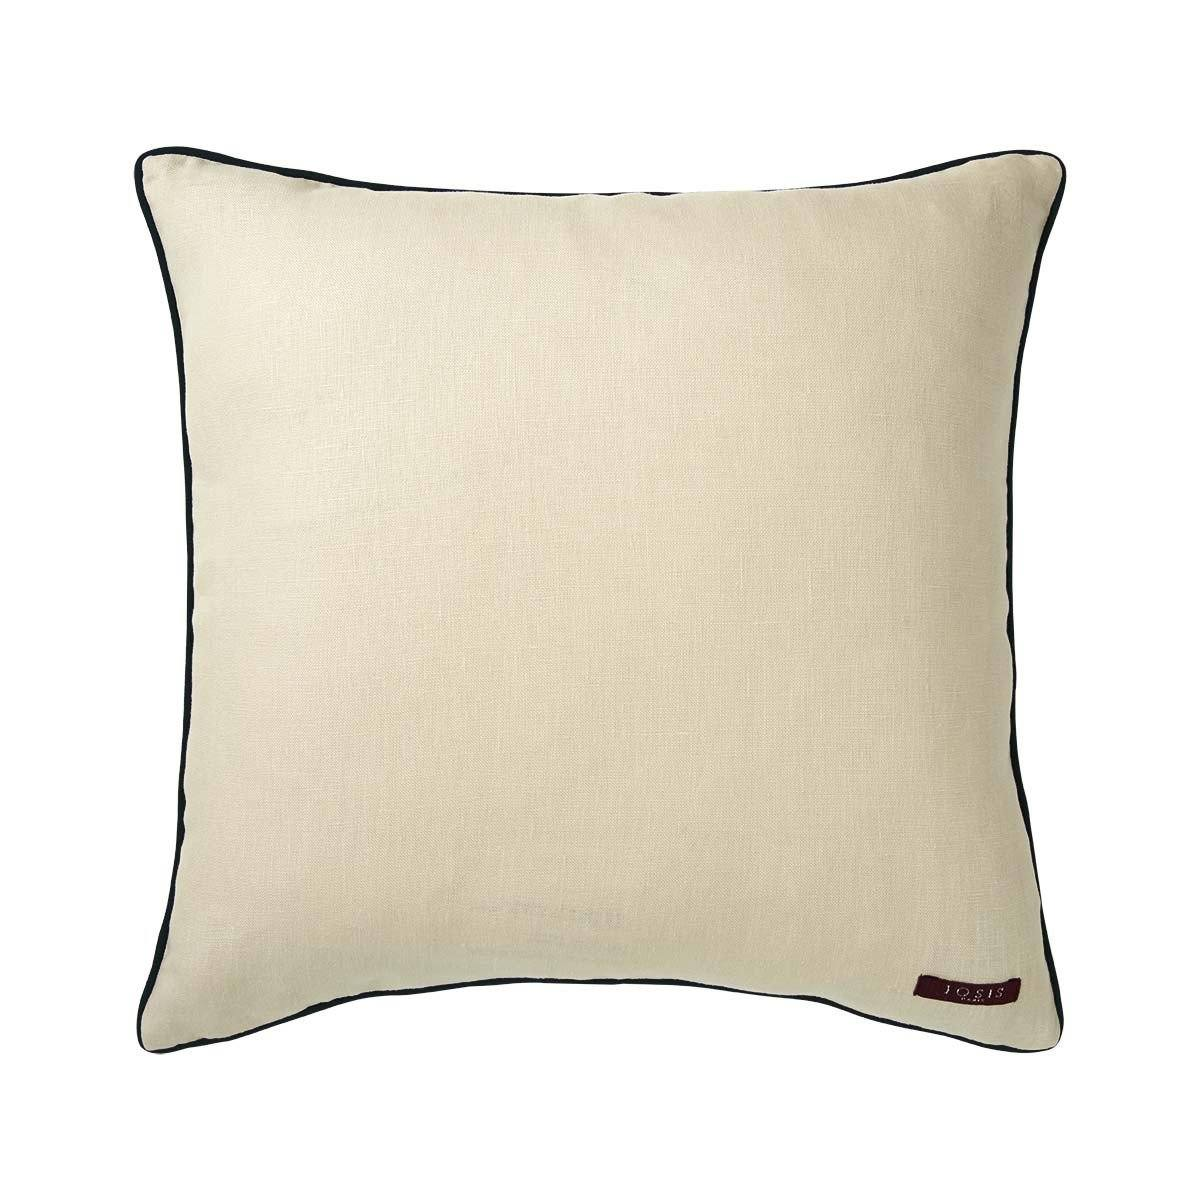 Fig Linens - Liesse Jade Decorative Pillow by Iosis  - Back